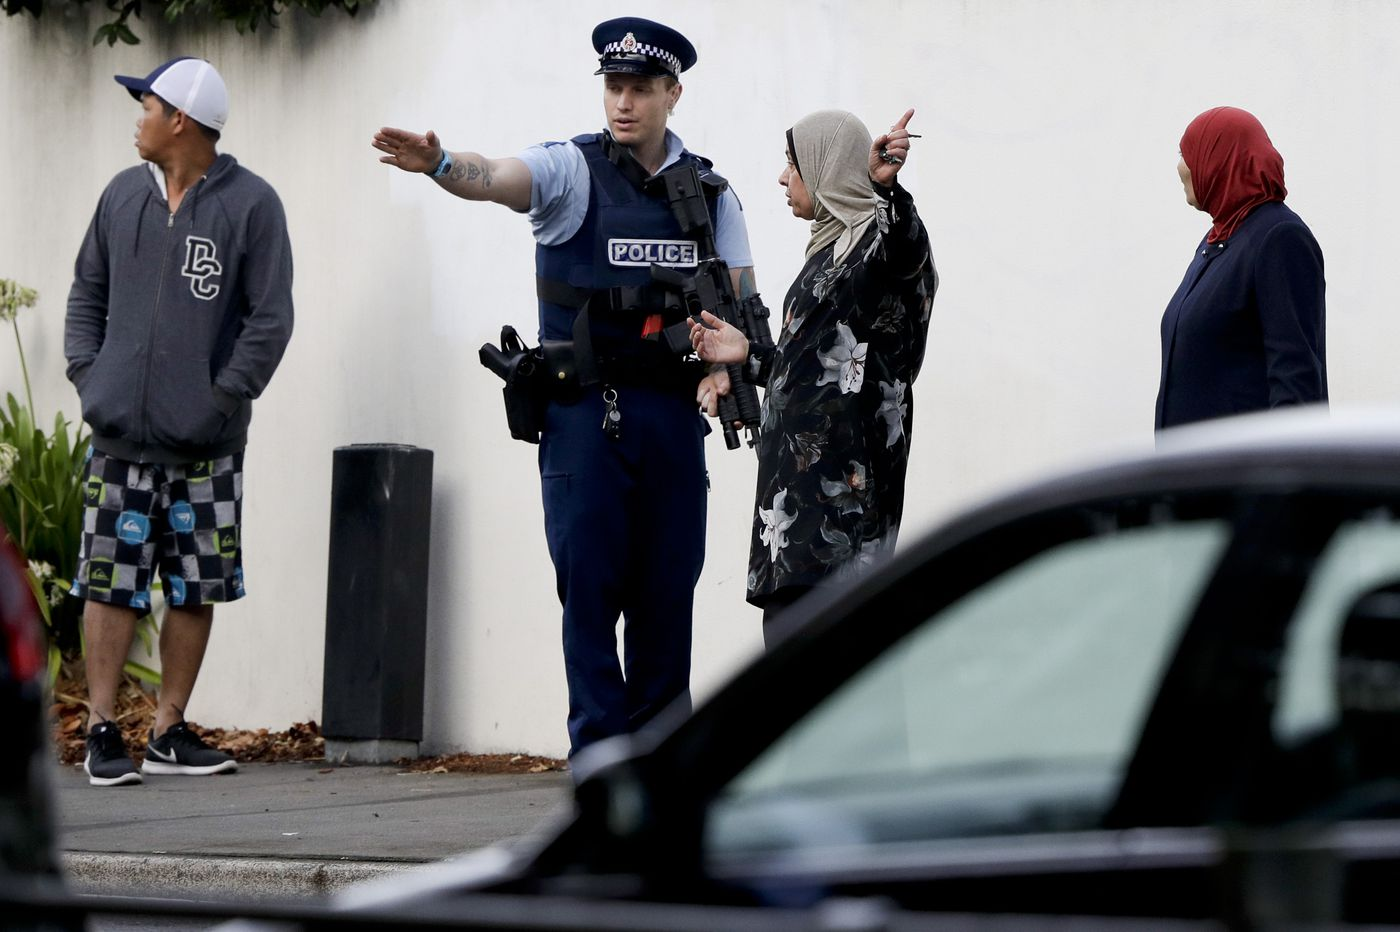 New Zealand reeling after terrorist attacks on mosques leave 49 dead